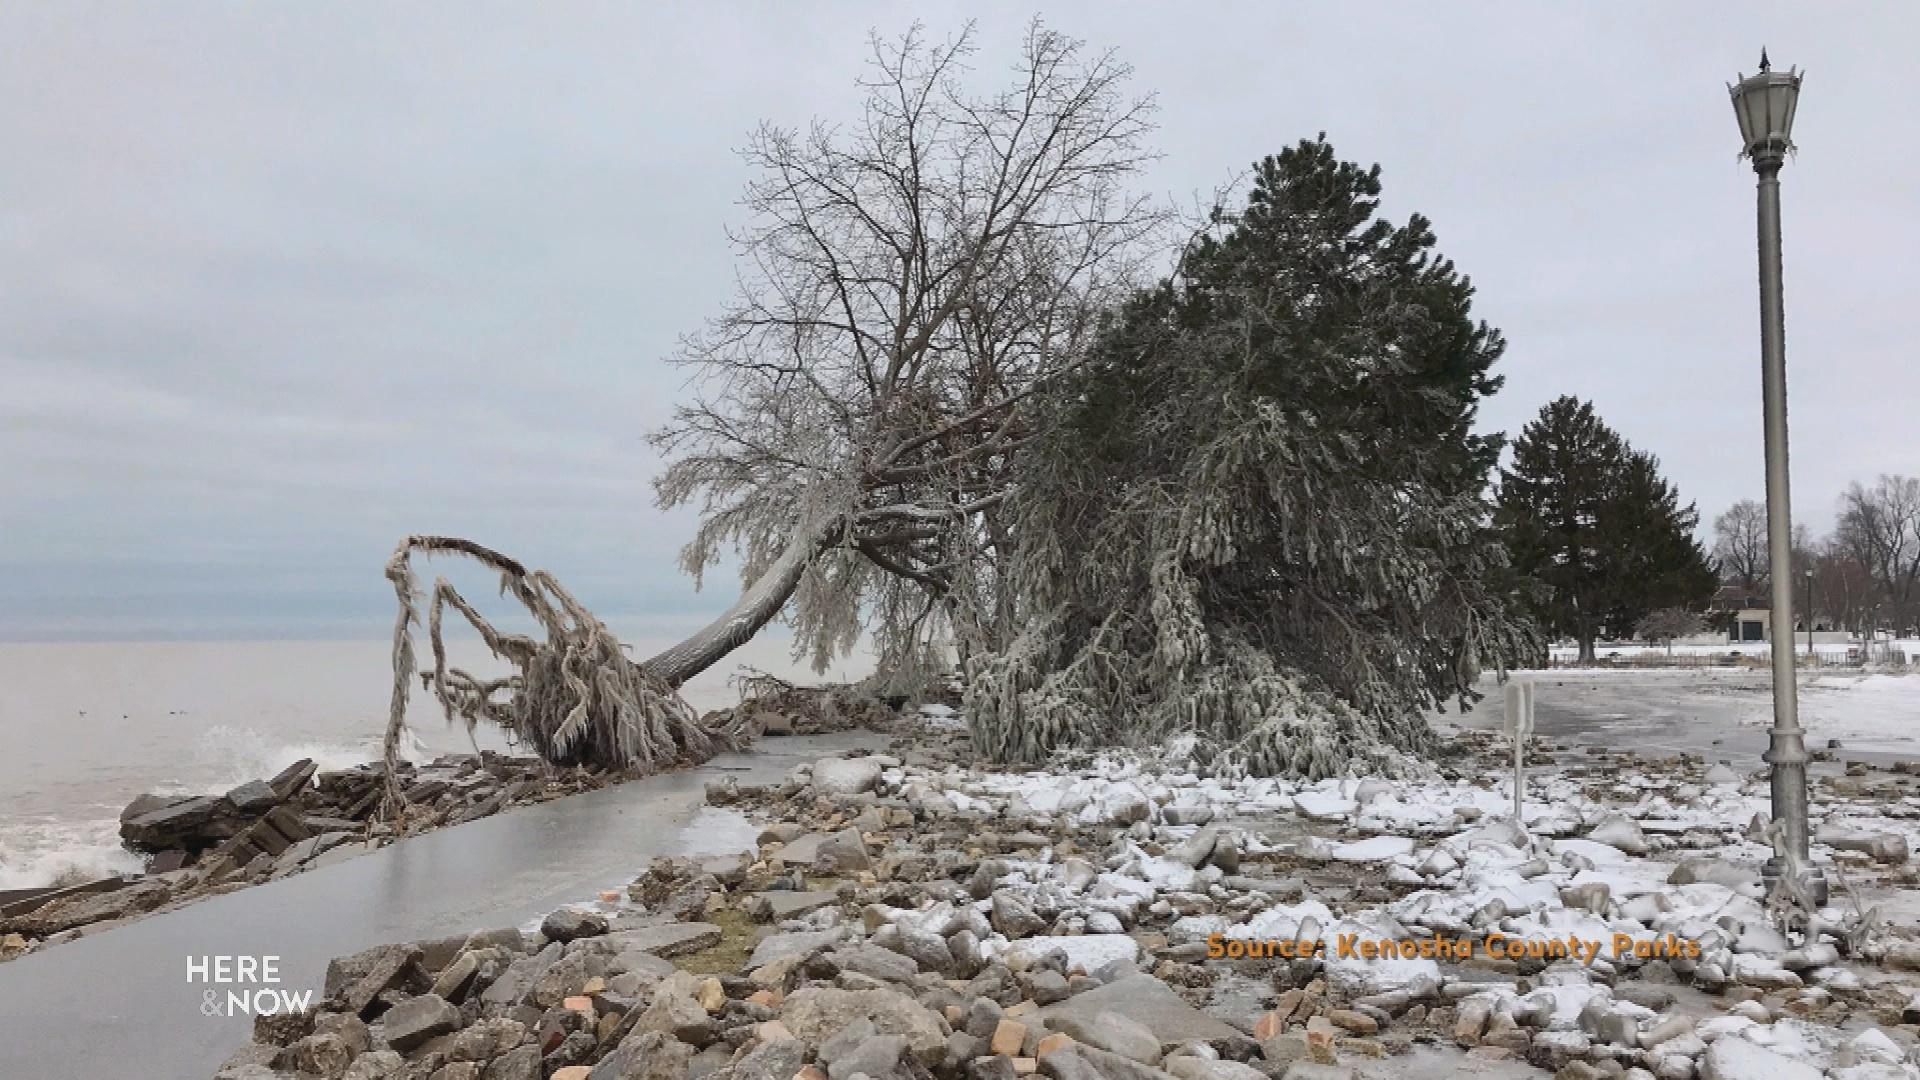 Shoreline Damage in Racine Co. Washes Up Need for Aid